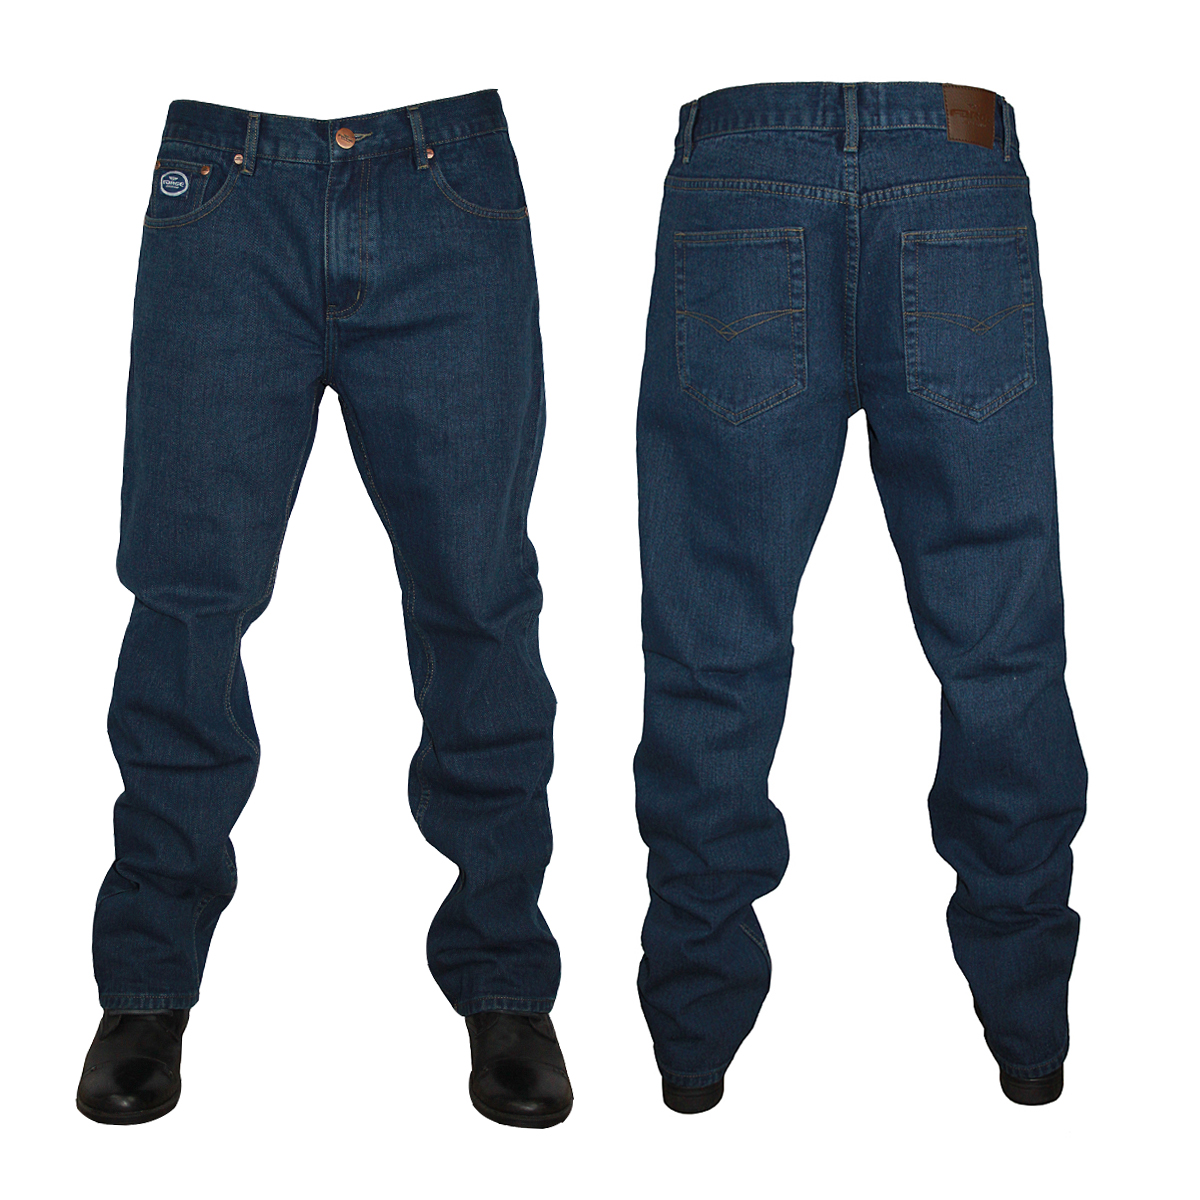 NEW-MENS-FORGE-BY-KAM-JEANS-F101-COMFORT-FIT-JEANS-ALL-WAIST-LEG-BIG-KING-SIZE